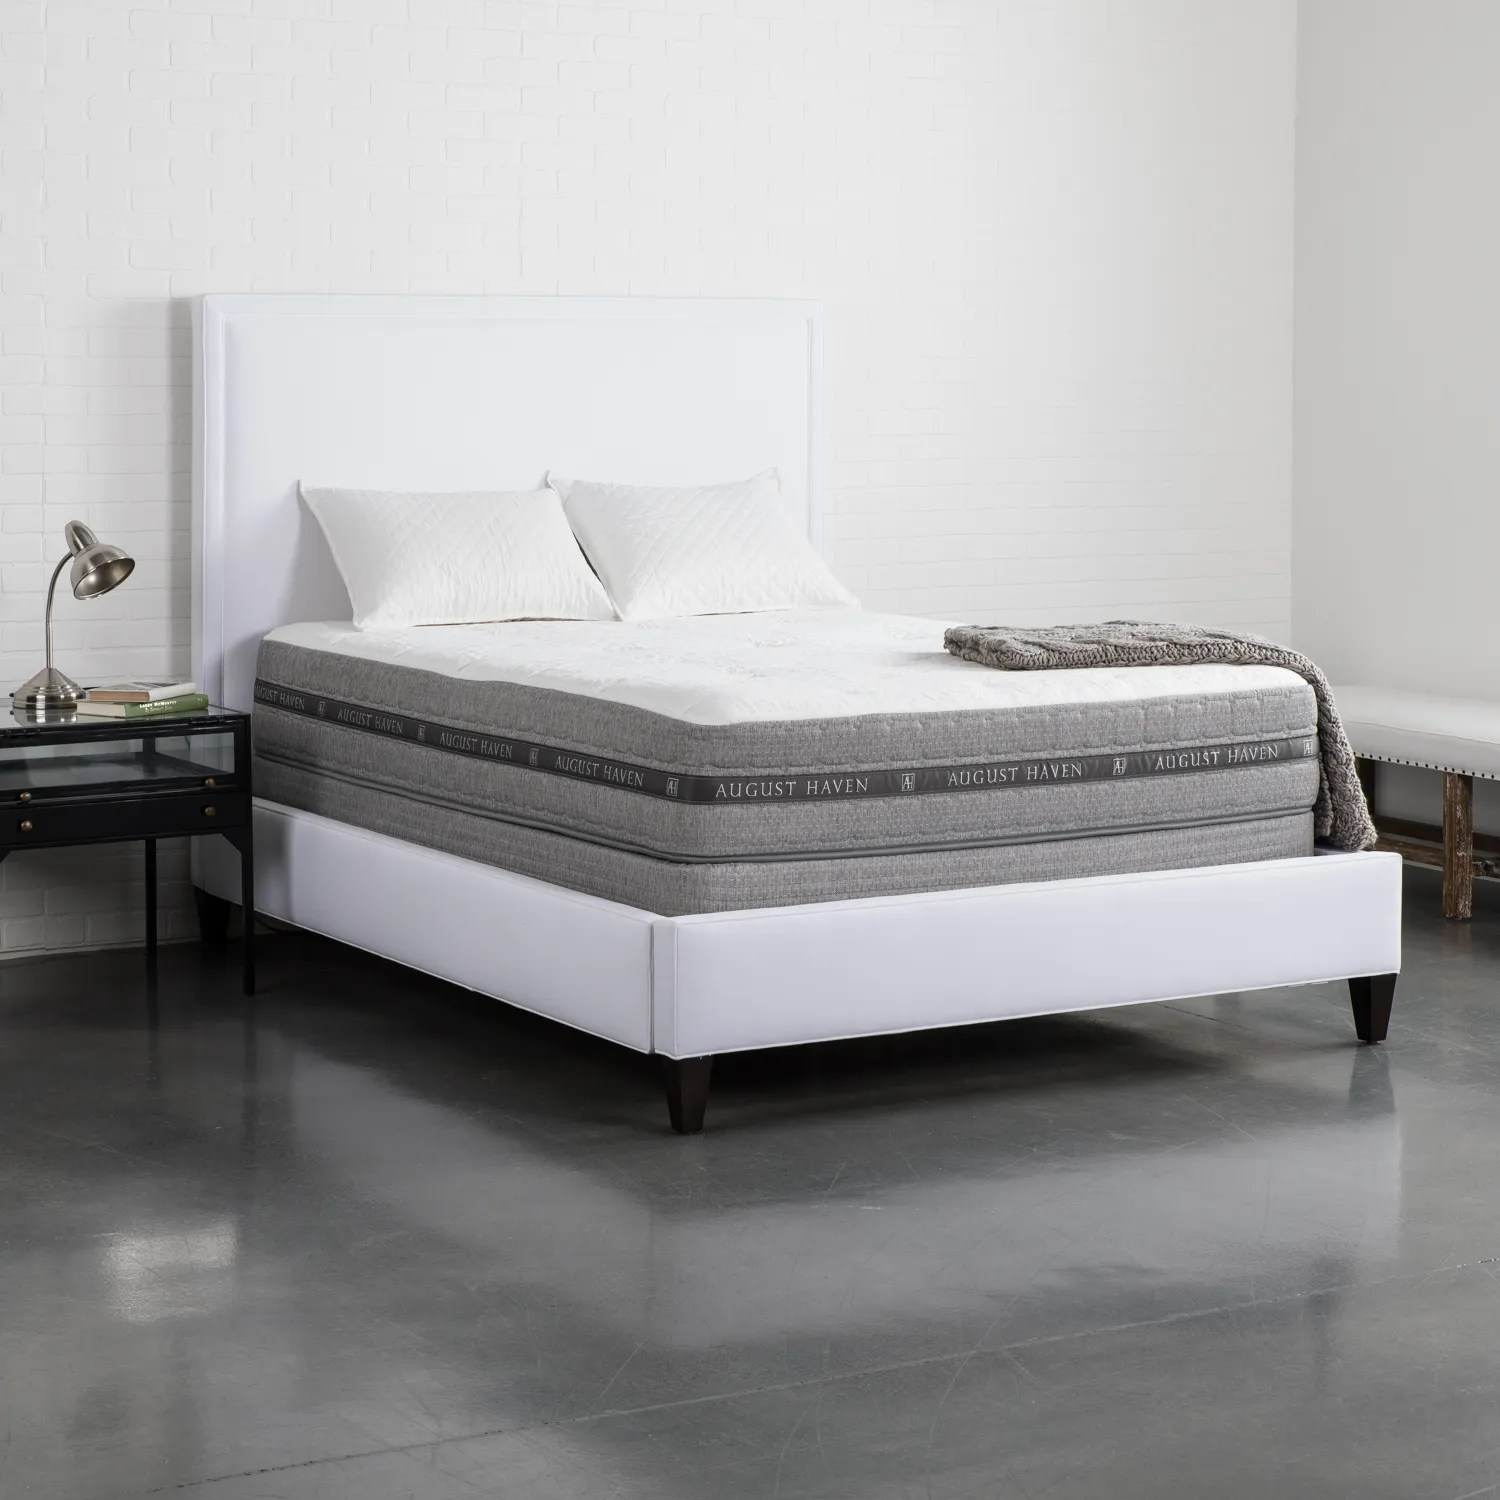 Bedroom Mattress August Haven Opulence Latex Twin Mattress